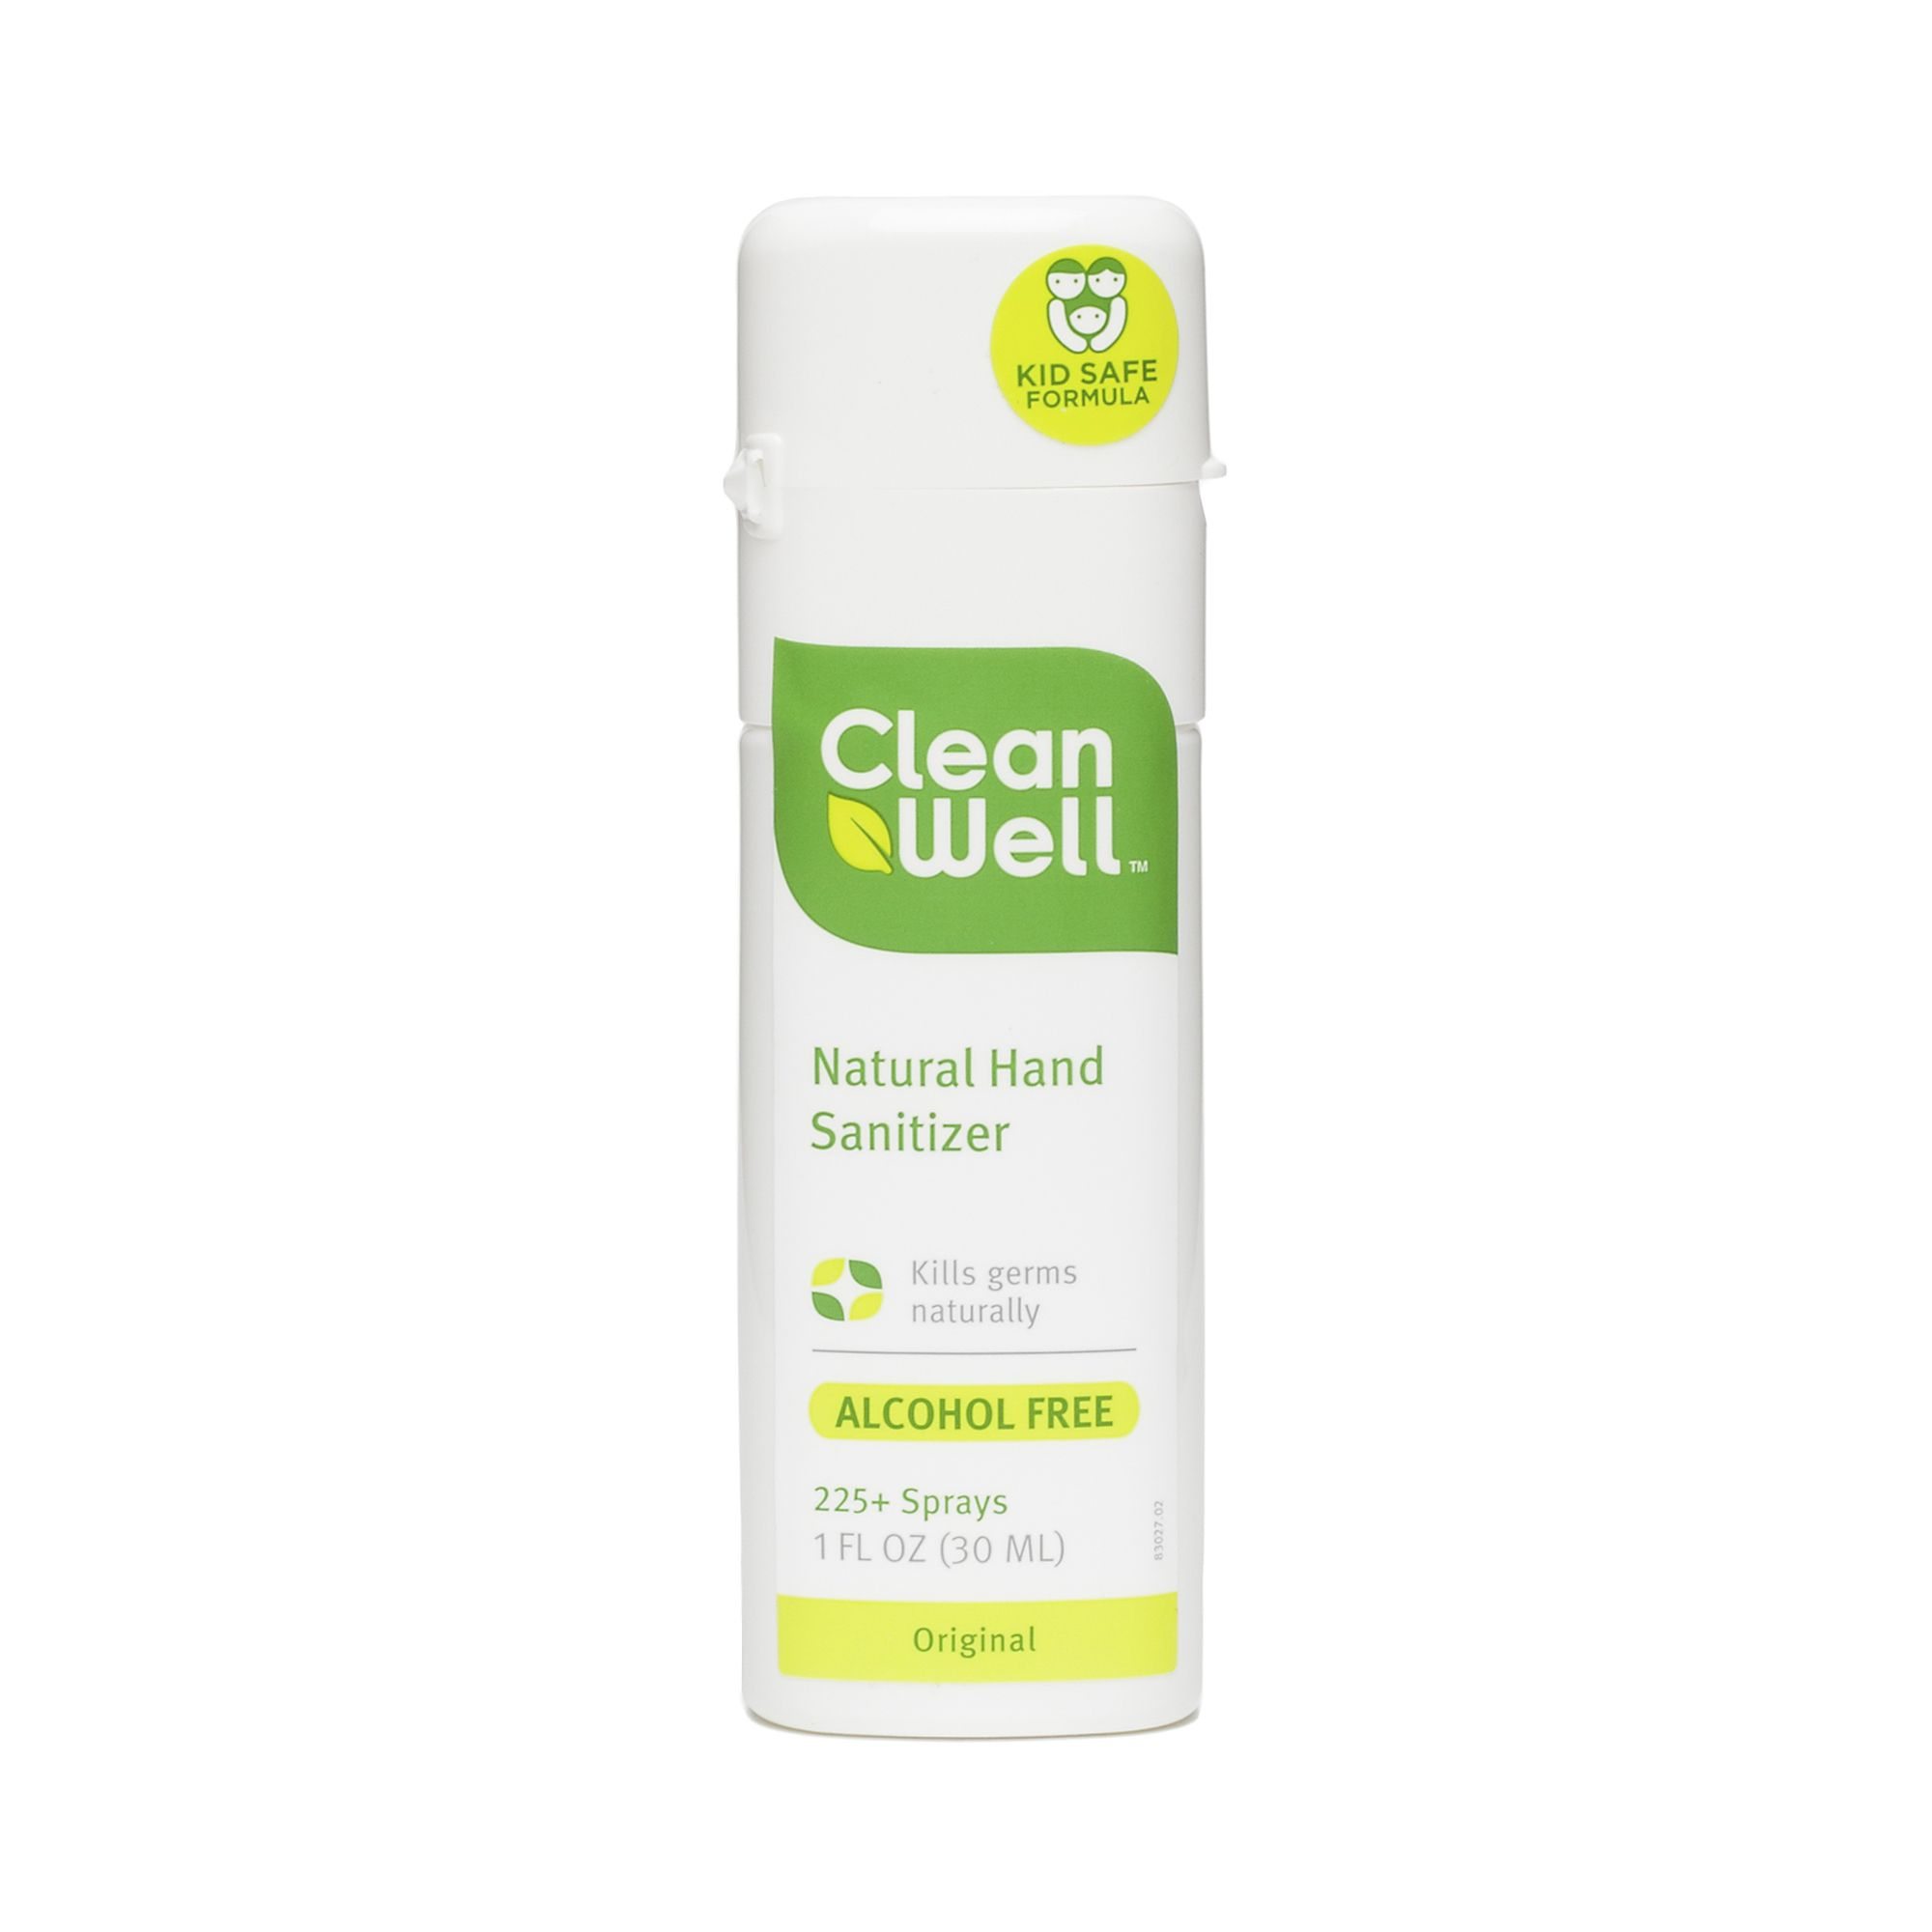 Cleanwell Hand Sanitizer Spray Hand Sanitizer Natural Hand